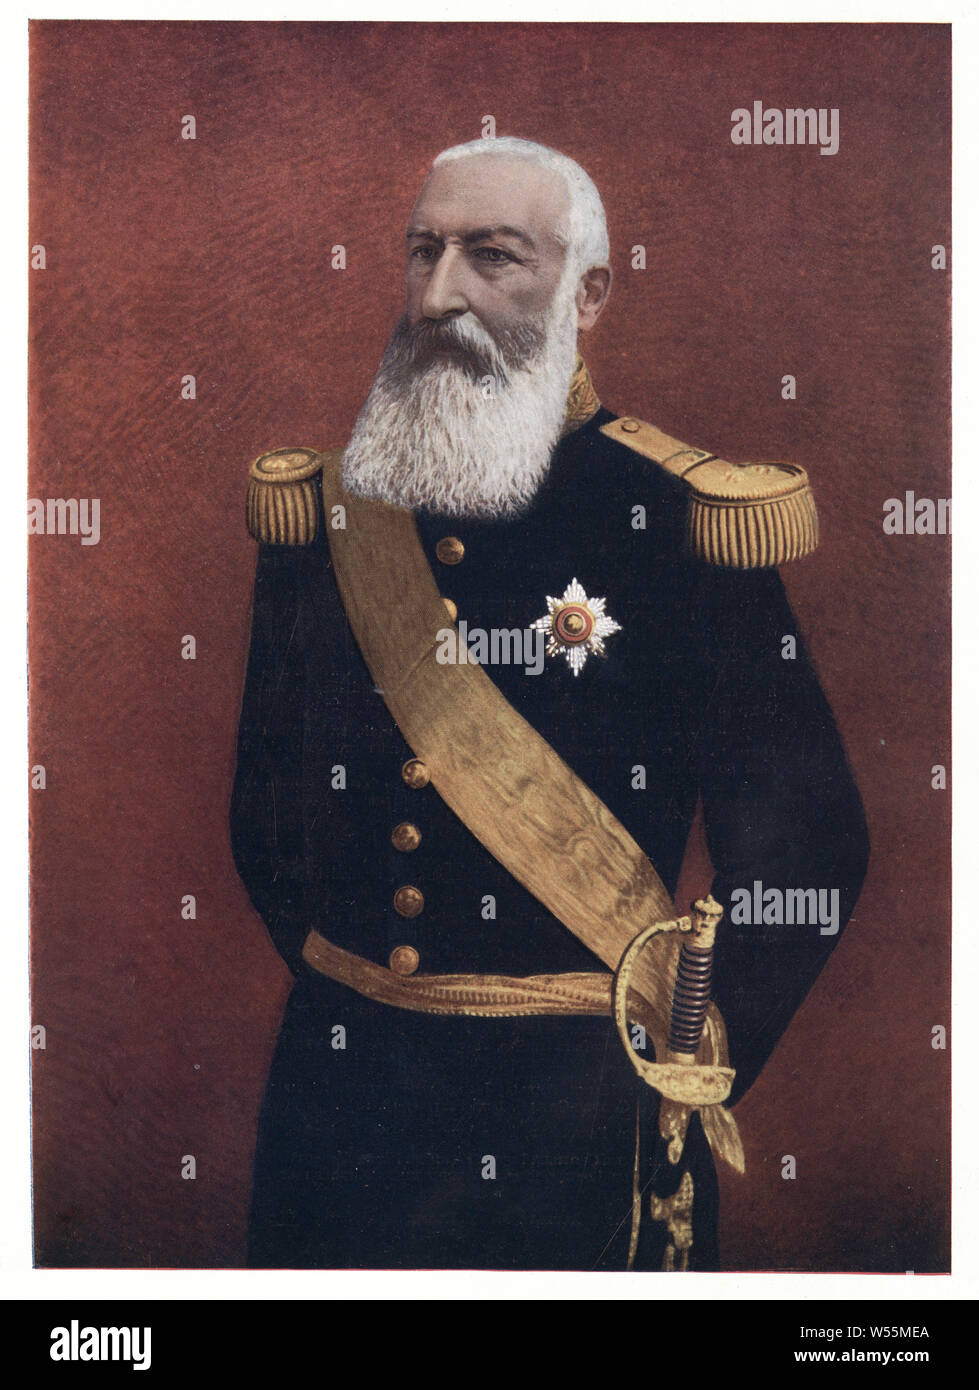 Leopold II (9 April 1835 – 17 December 1909) was King of the Belgians from 1865 to 1909. Stock Photo